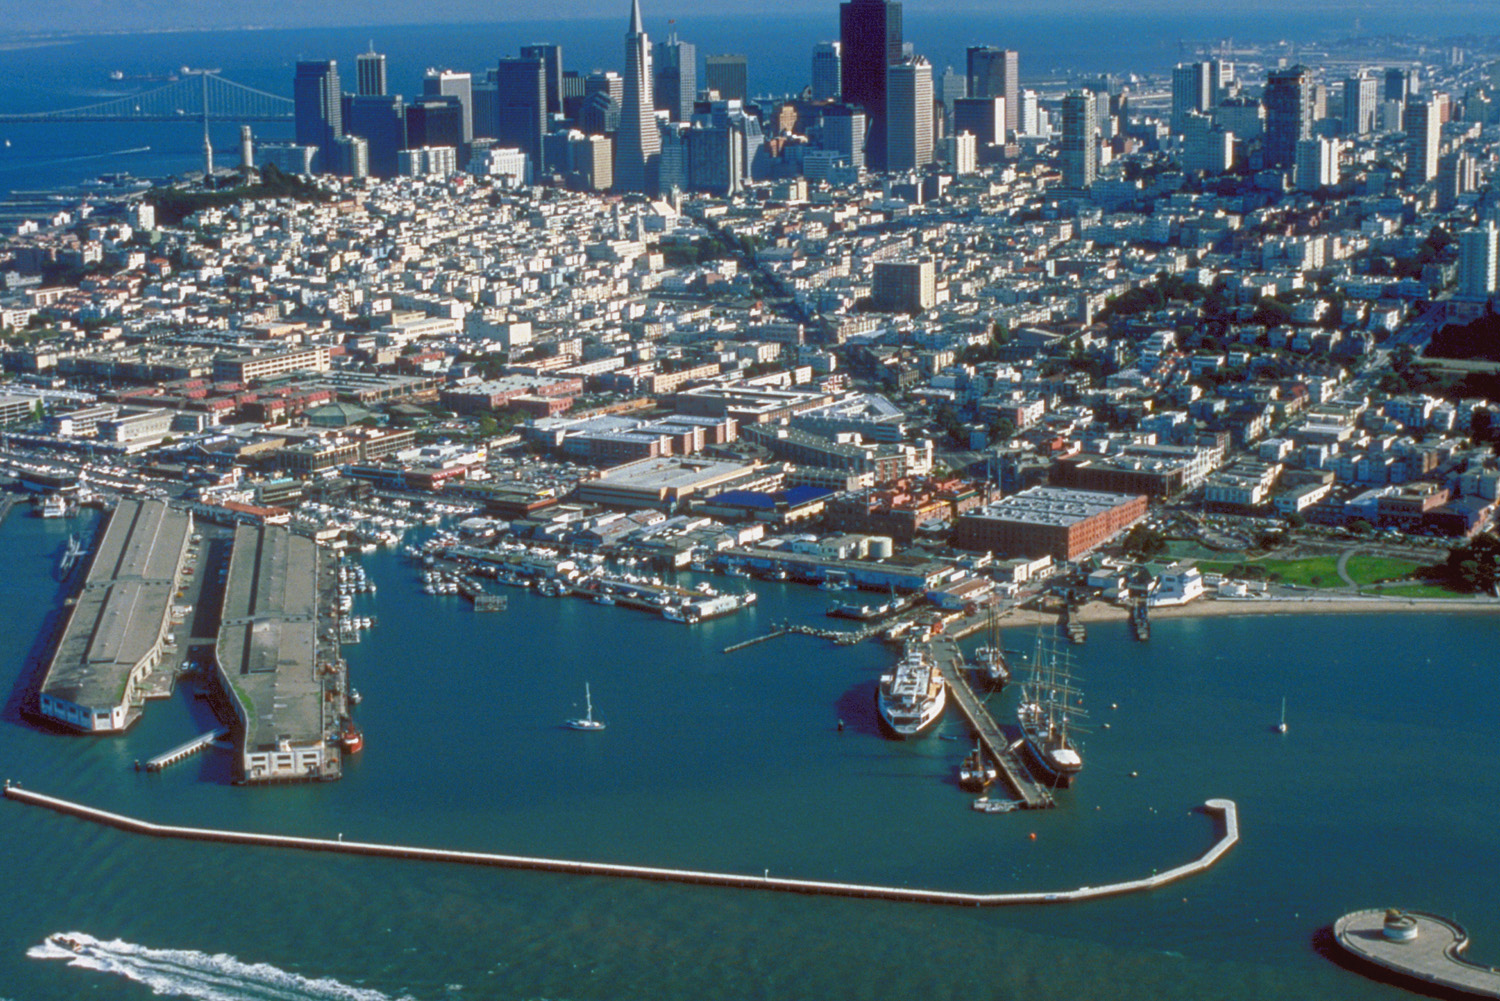 Tourist places around the world best tourist attractions for Fishing store san francisco